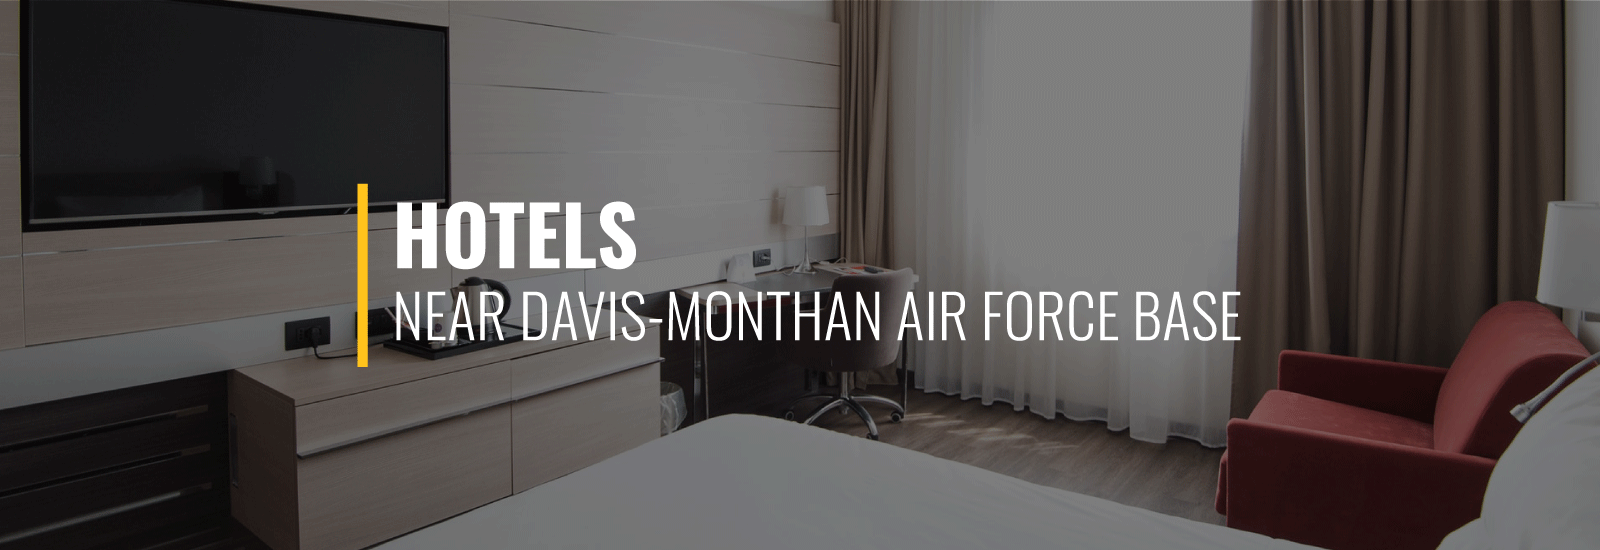 Hotels on Davis-Monthan AFB